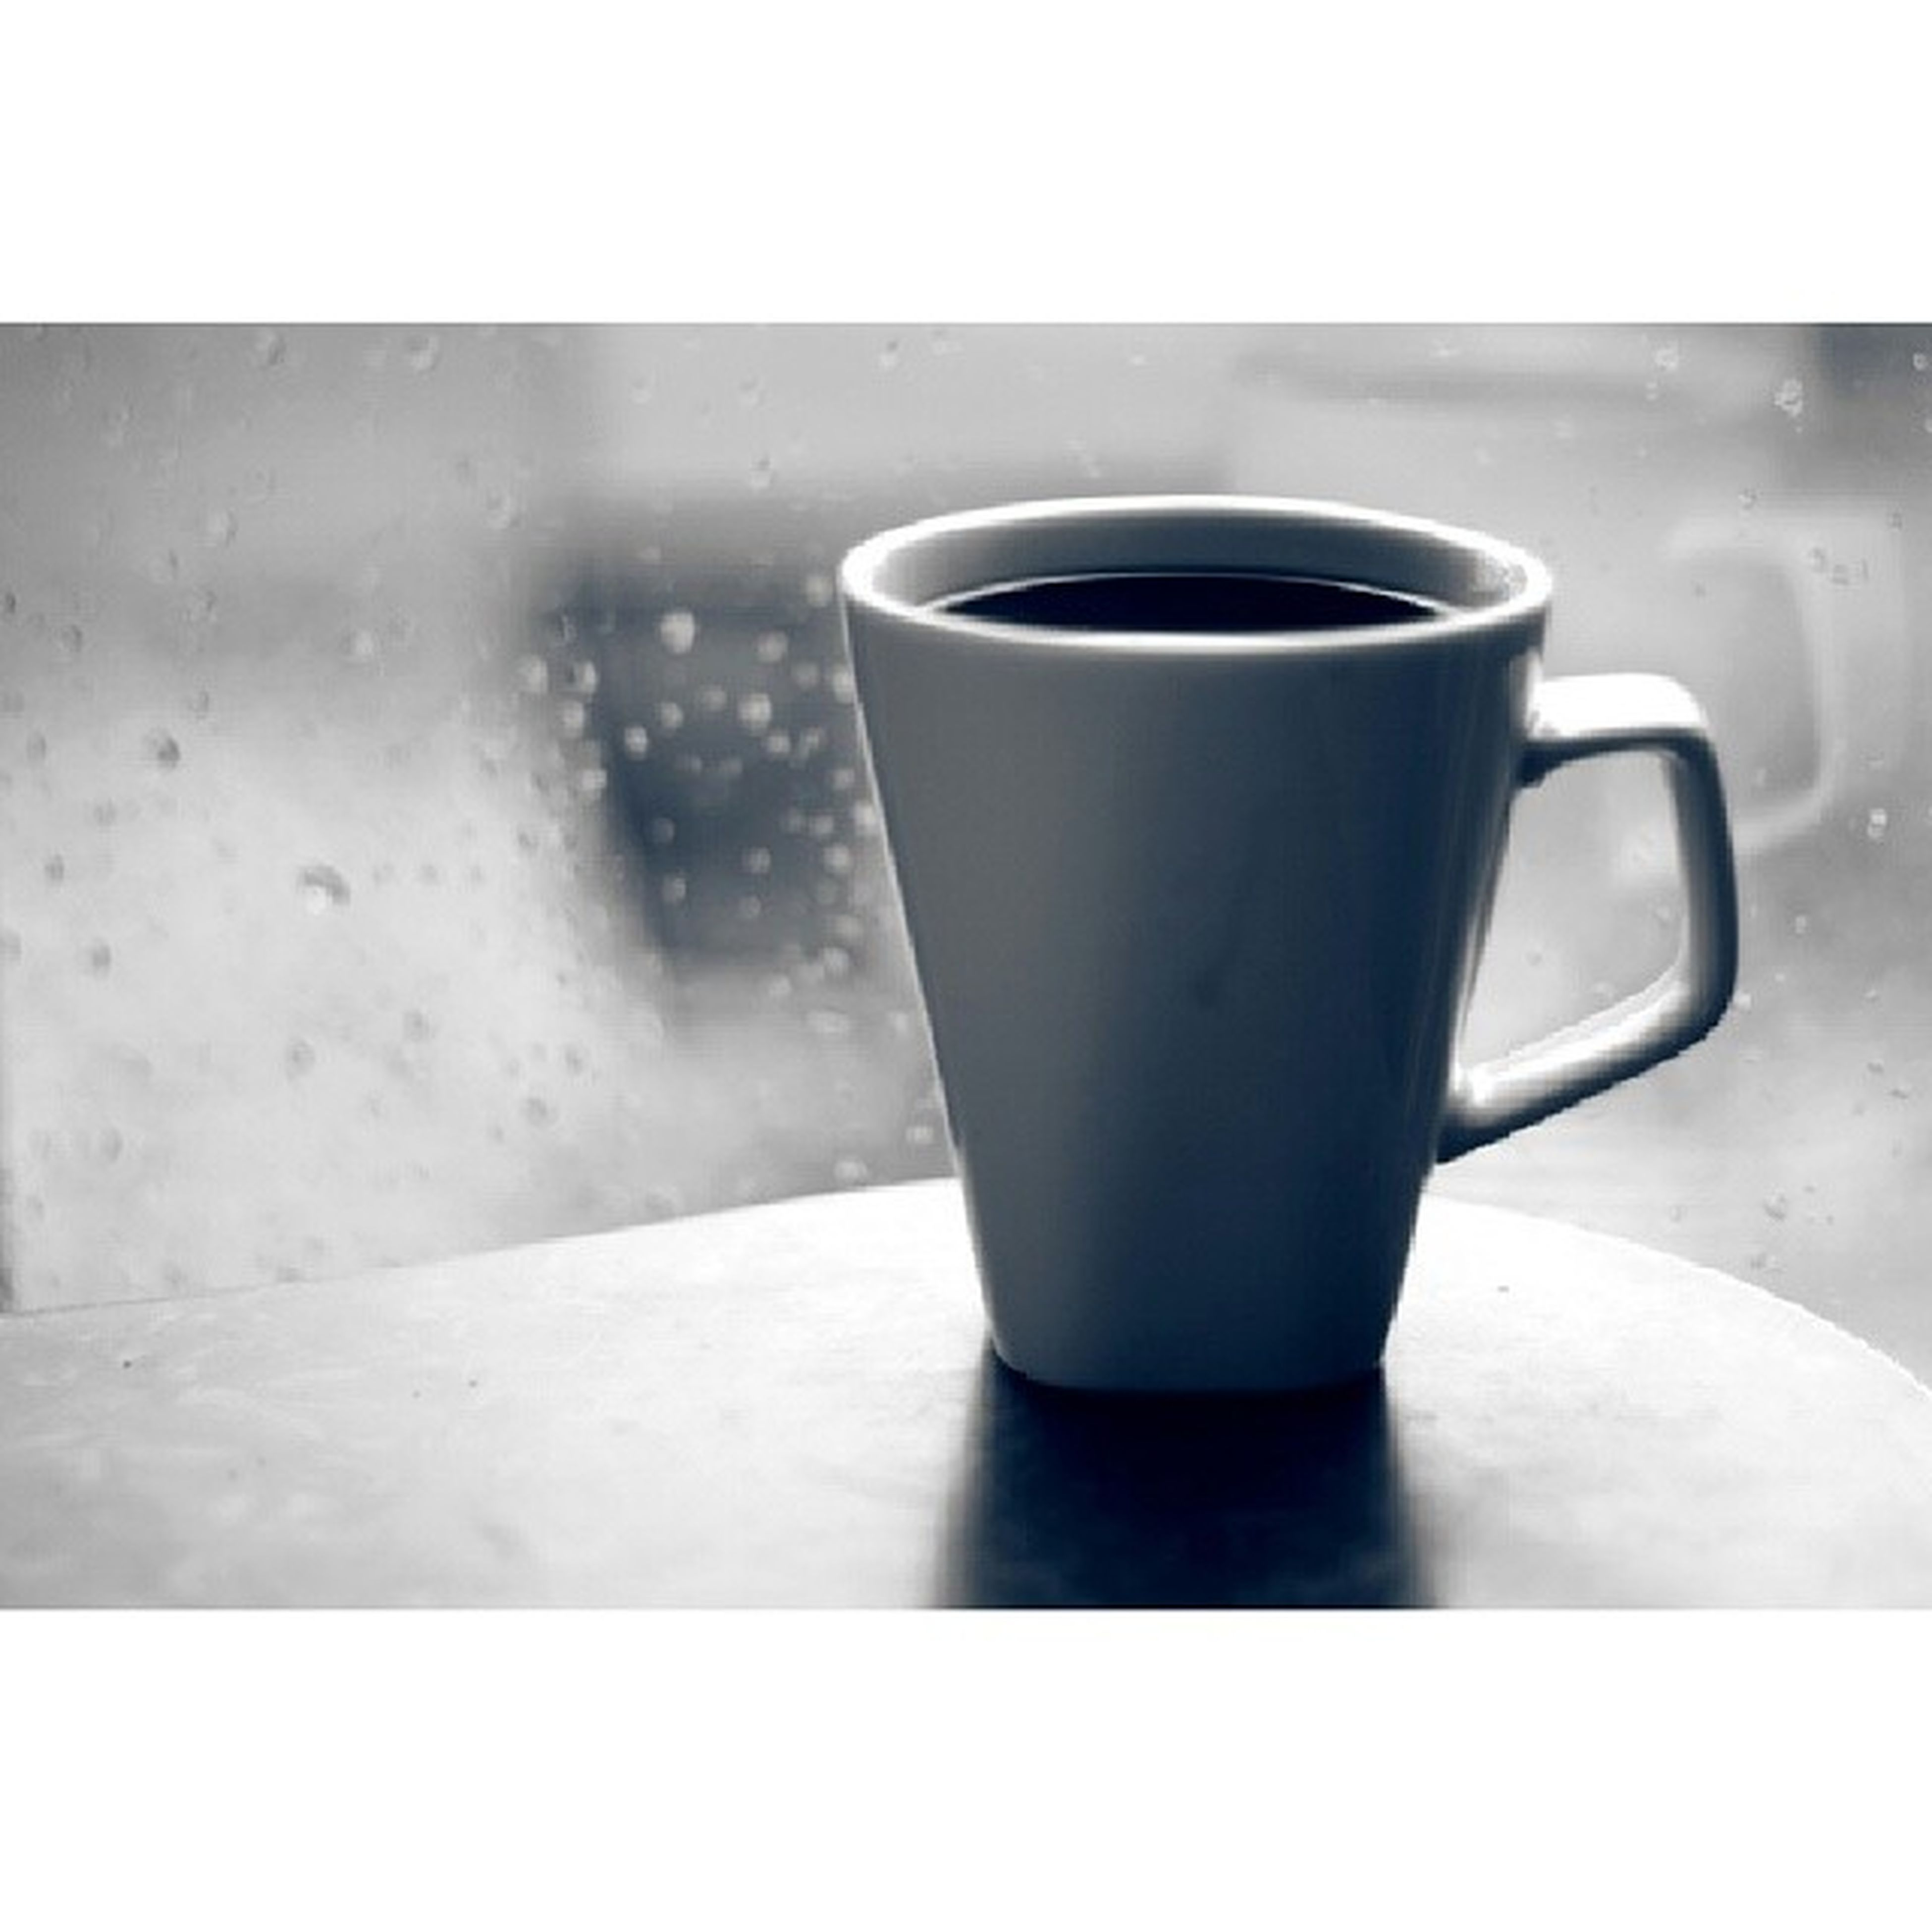 drink, refreshment, food and drink, coffee cup, freshness, coffee - drink, indoors, table, coffee, transfer print, close-up, saucer, cup, still life, beverage, auto post production filter, frothy drink, tea, tea cup, no people